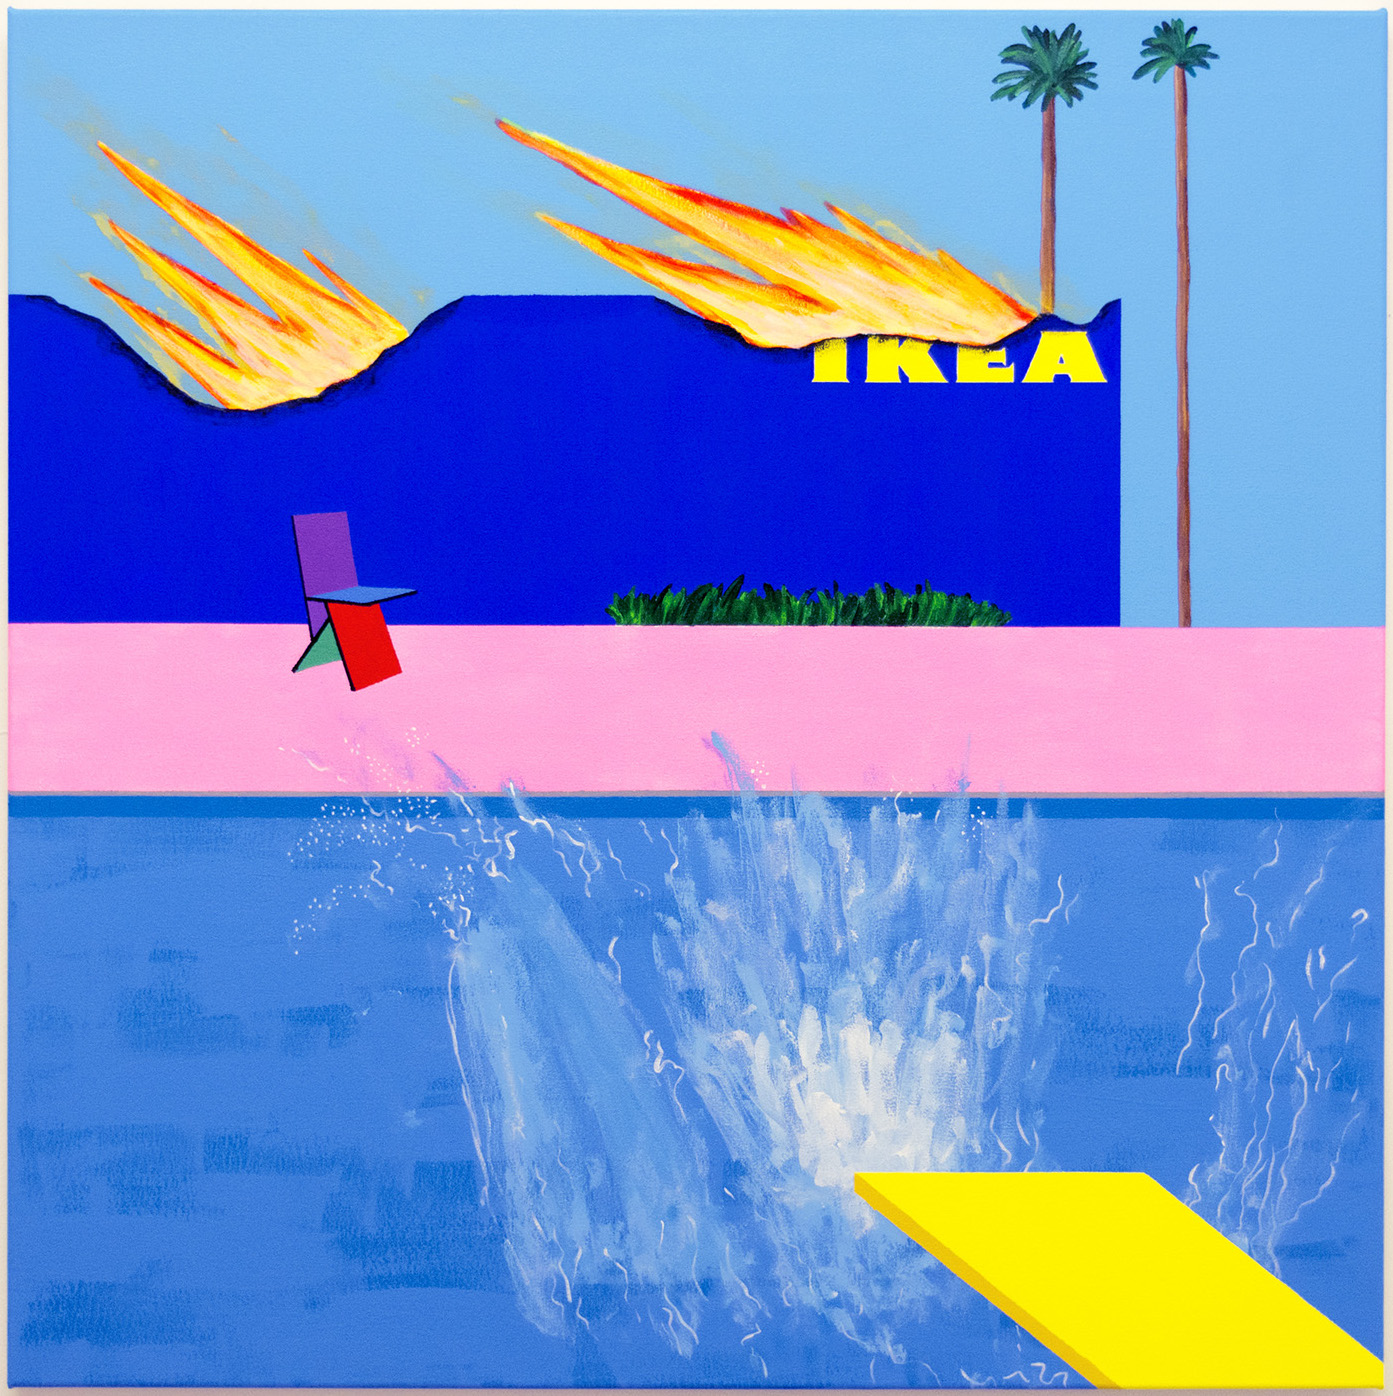 Michael Pybus, A Bigger Splash, 2017, acrylic and permanent pigmented ink on canvas, 100 x 100 cm